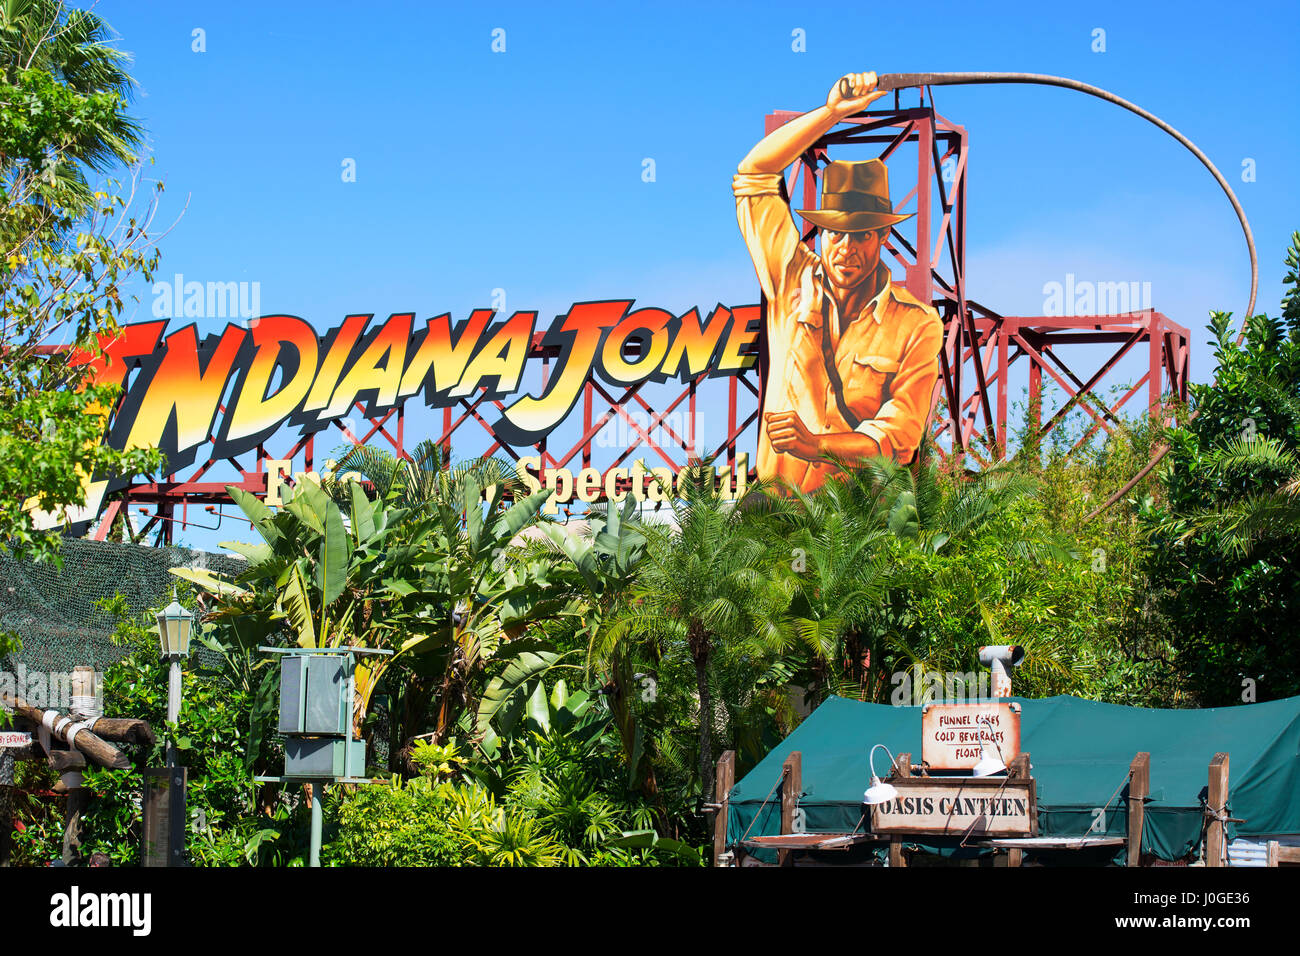 Indiana Jones Epic Stunt Spectacular, Hollywood Studios, Disney World, Orlando Florida - Stock Image